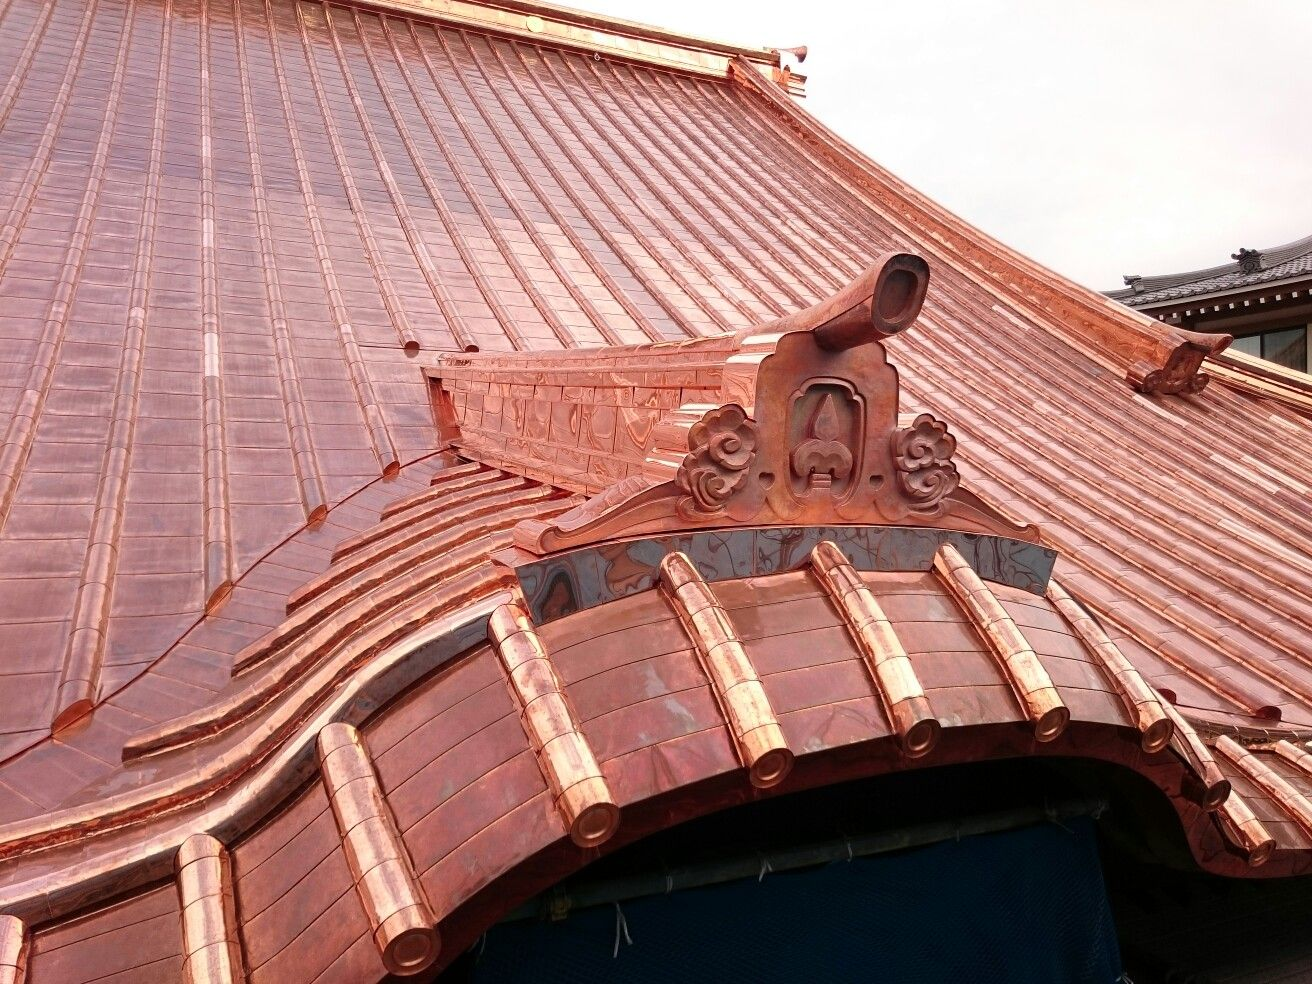 Pin On Copper Metal Roof Construction